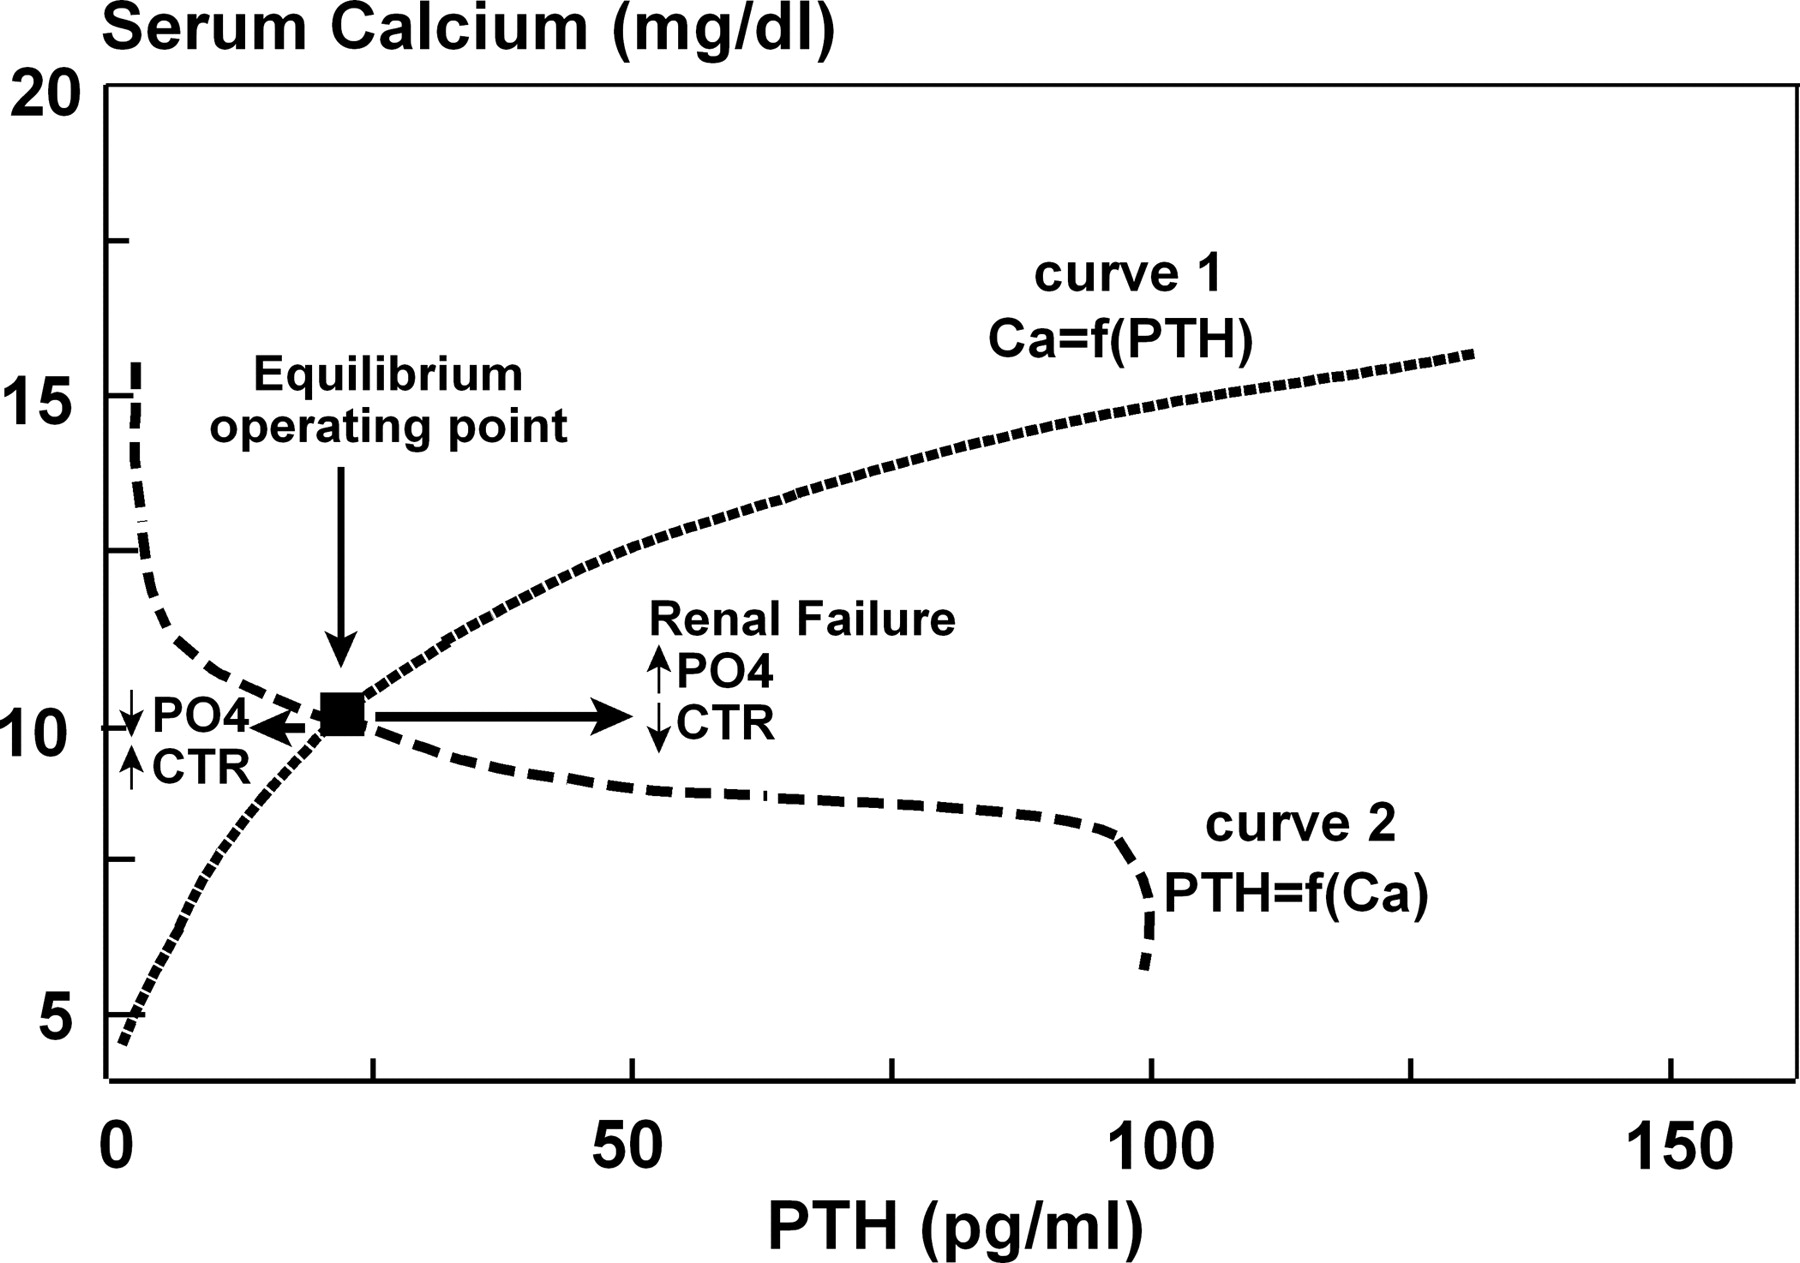 Dynamics Of Parathyroid Hormone Secretion In Health And Secondary